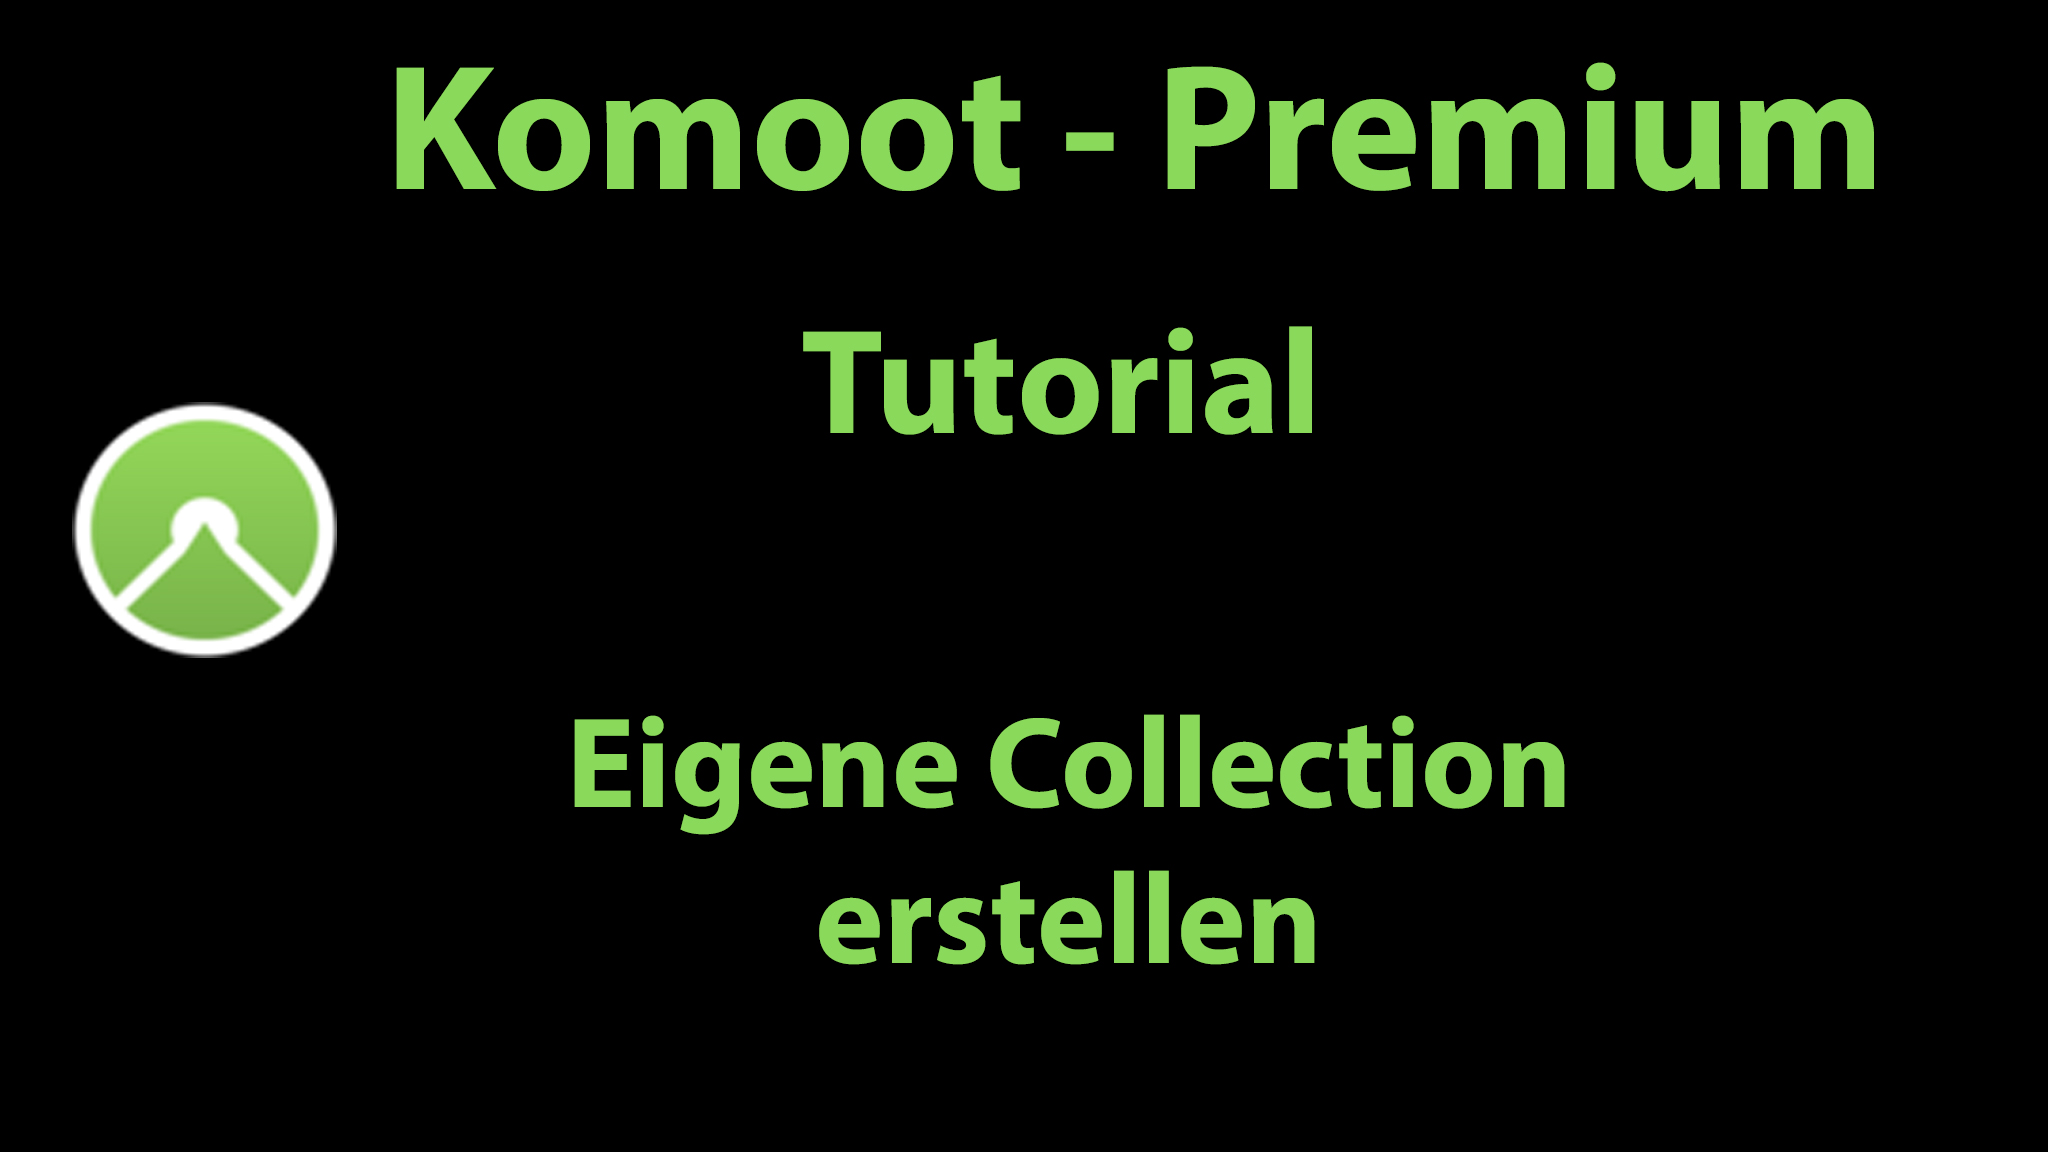 Eigene Collection mit Premium